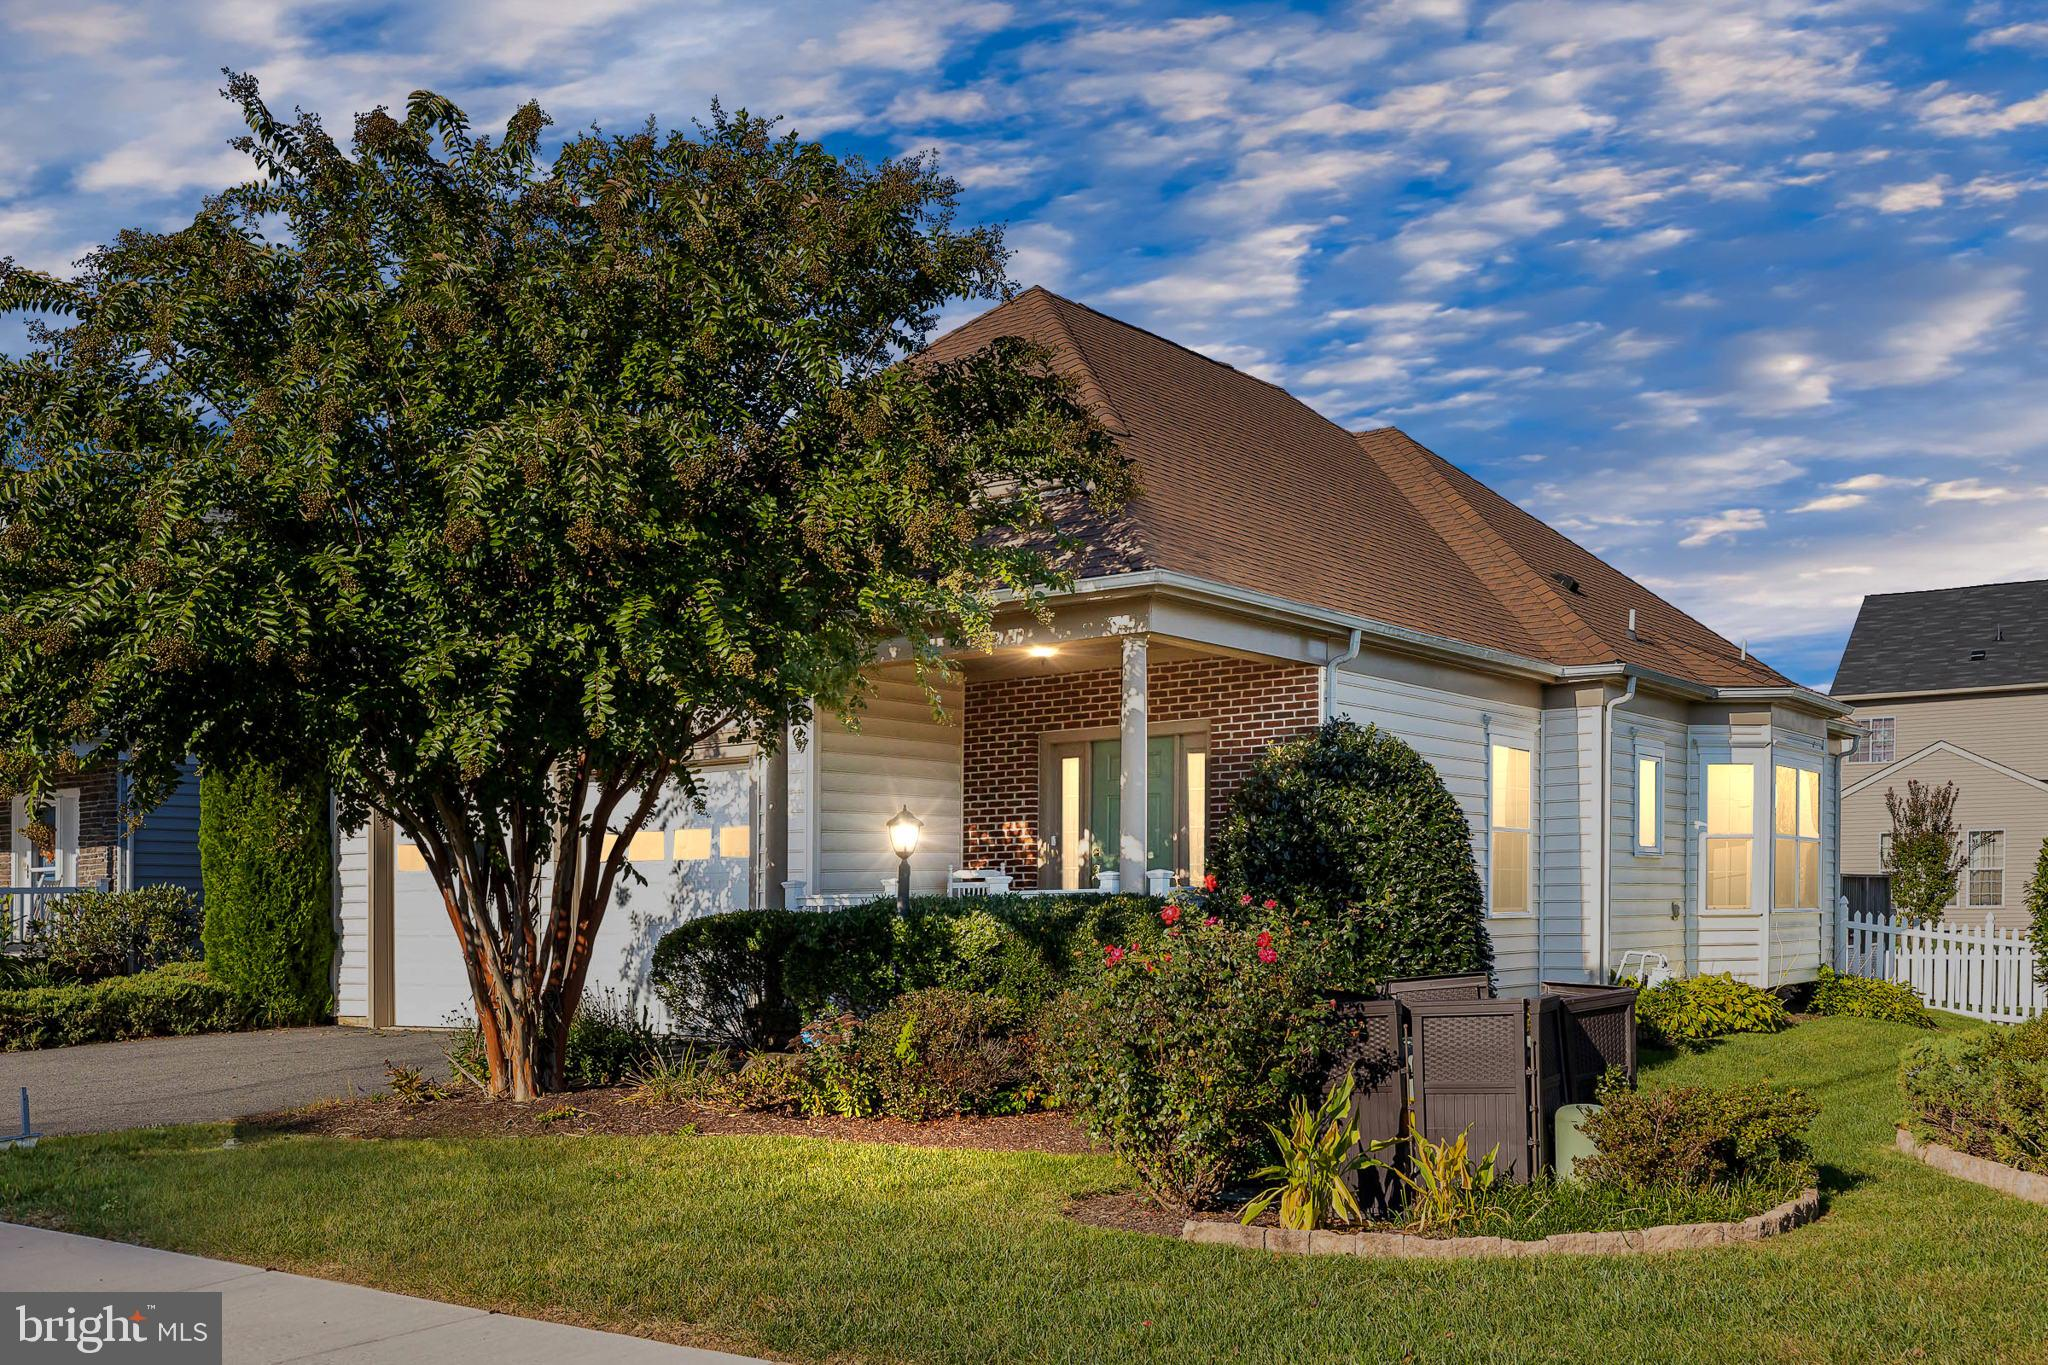 LOOKING FOR ONE-LEVEL LOW MAINTENANCE LIVING? WELCOME HOME TO 23 DABNEY COURT. NESTLED IN THE 55+ AC